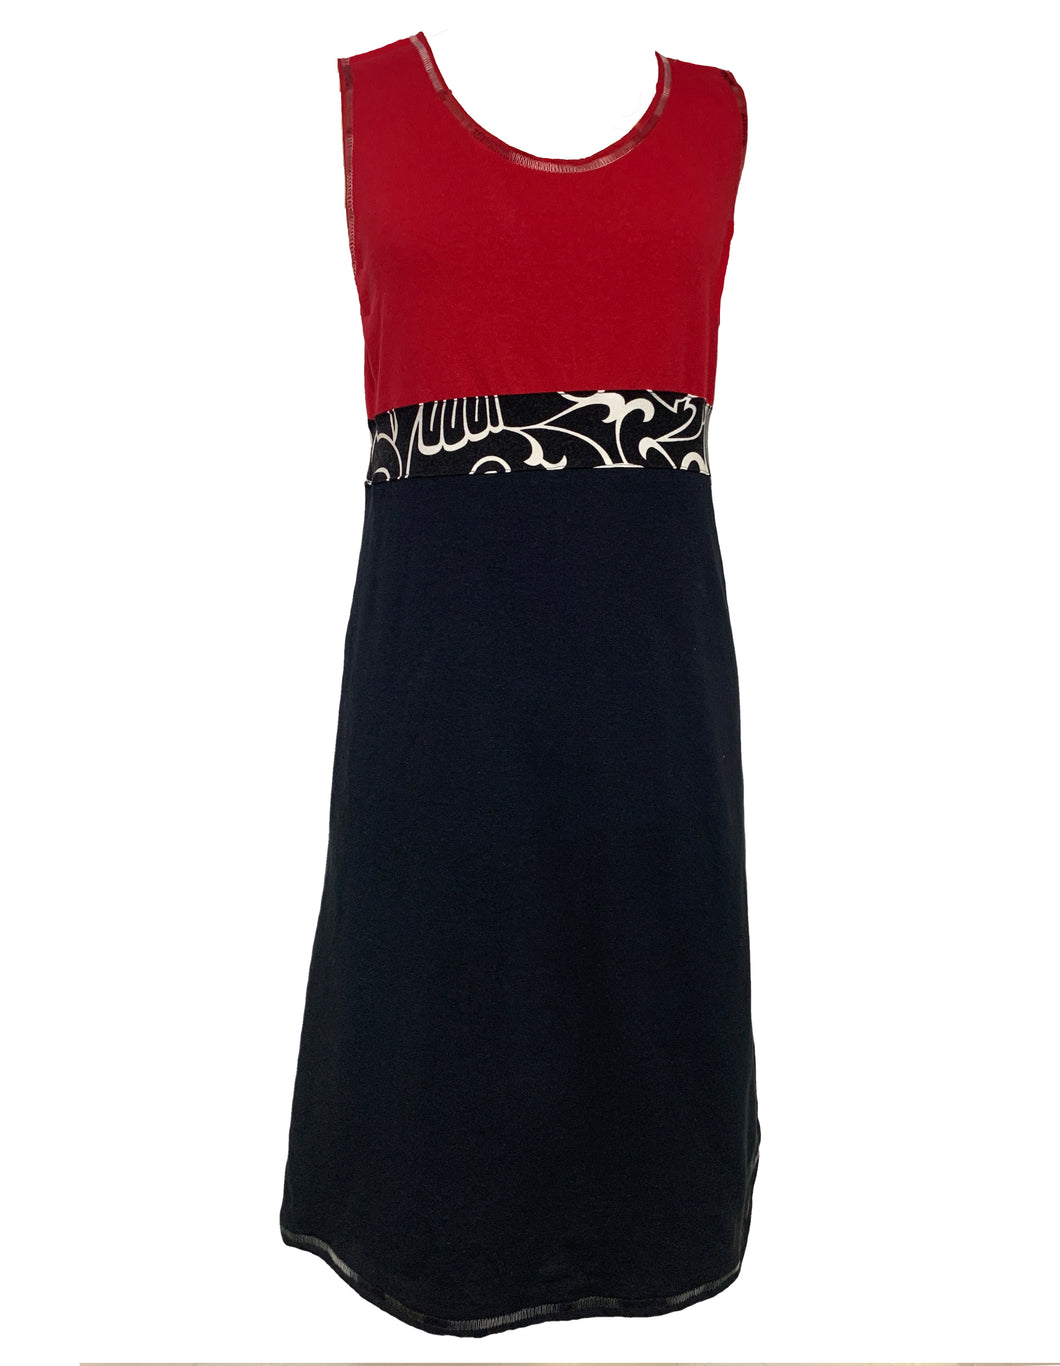 Simple Dress-Red & Black with Swirl Waist